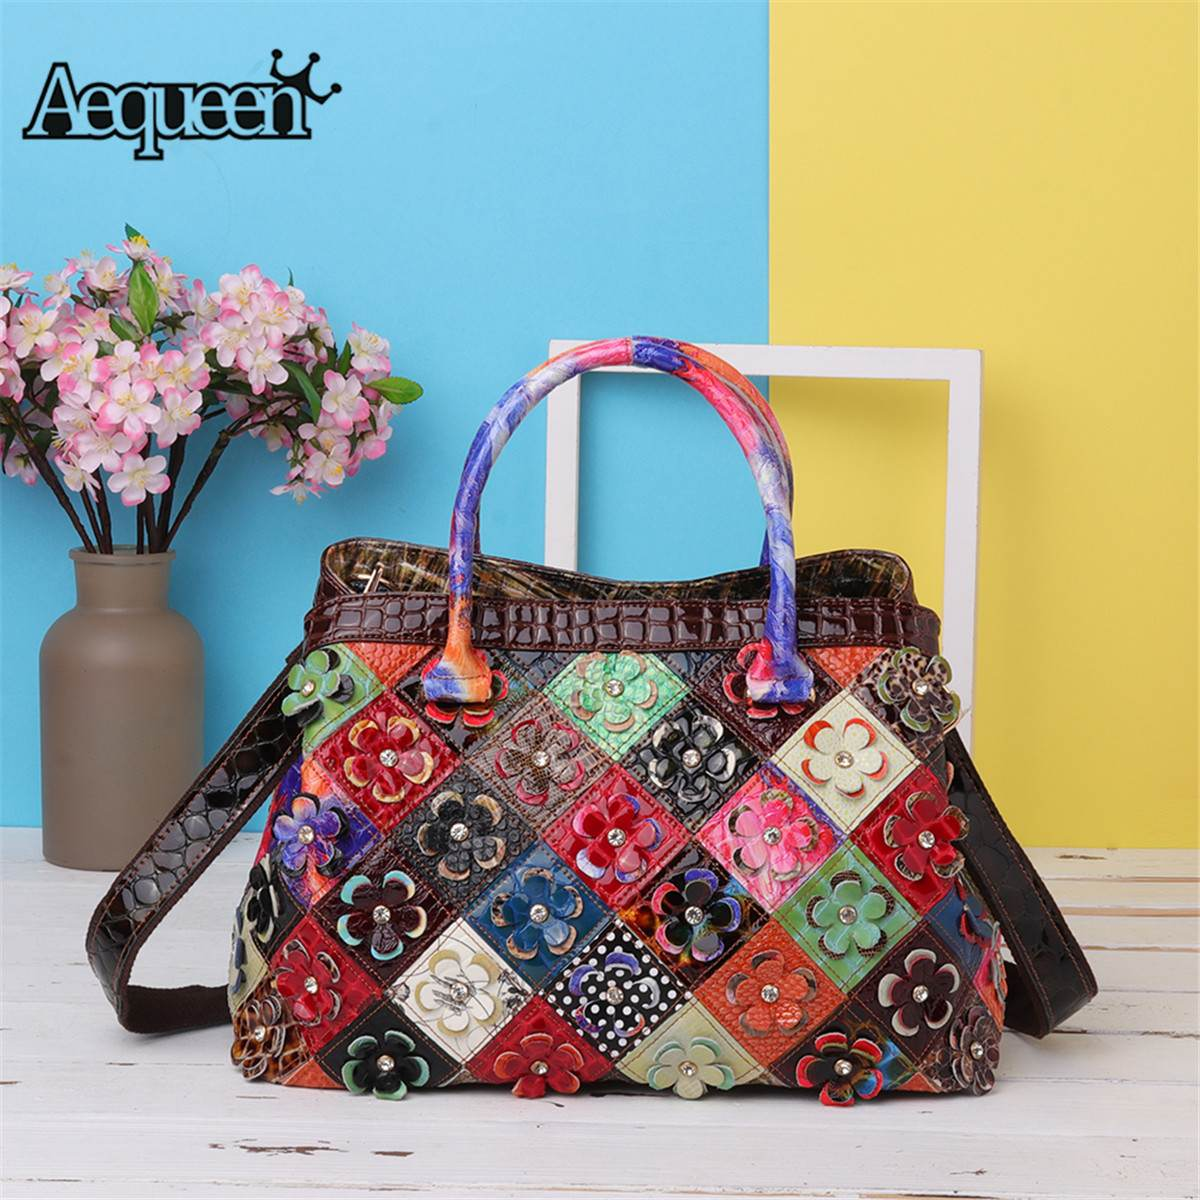 AEQUEEN 2018 Patchwork Genuine Leather Handbags Women luxury Shoulder Bags Ladies Flower Totes Crossbody Bags Bolso Random Color